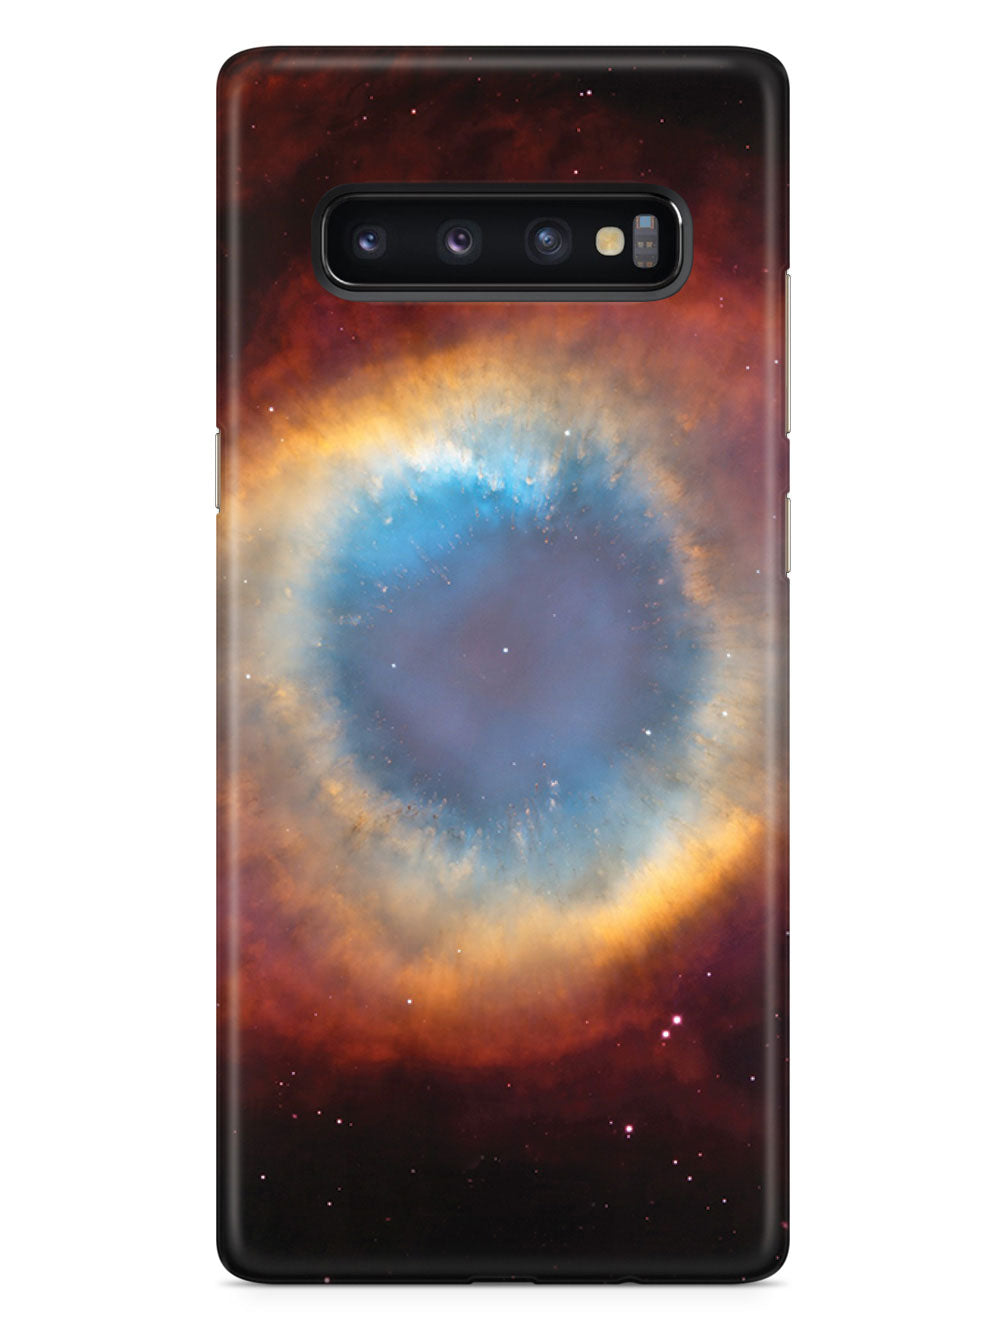 Helix Nebula Vs. 2 Outer Space Planetary Eye of God Case